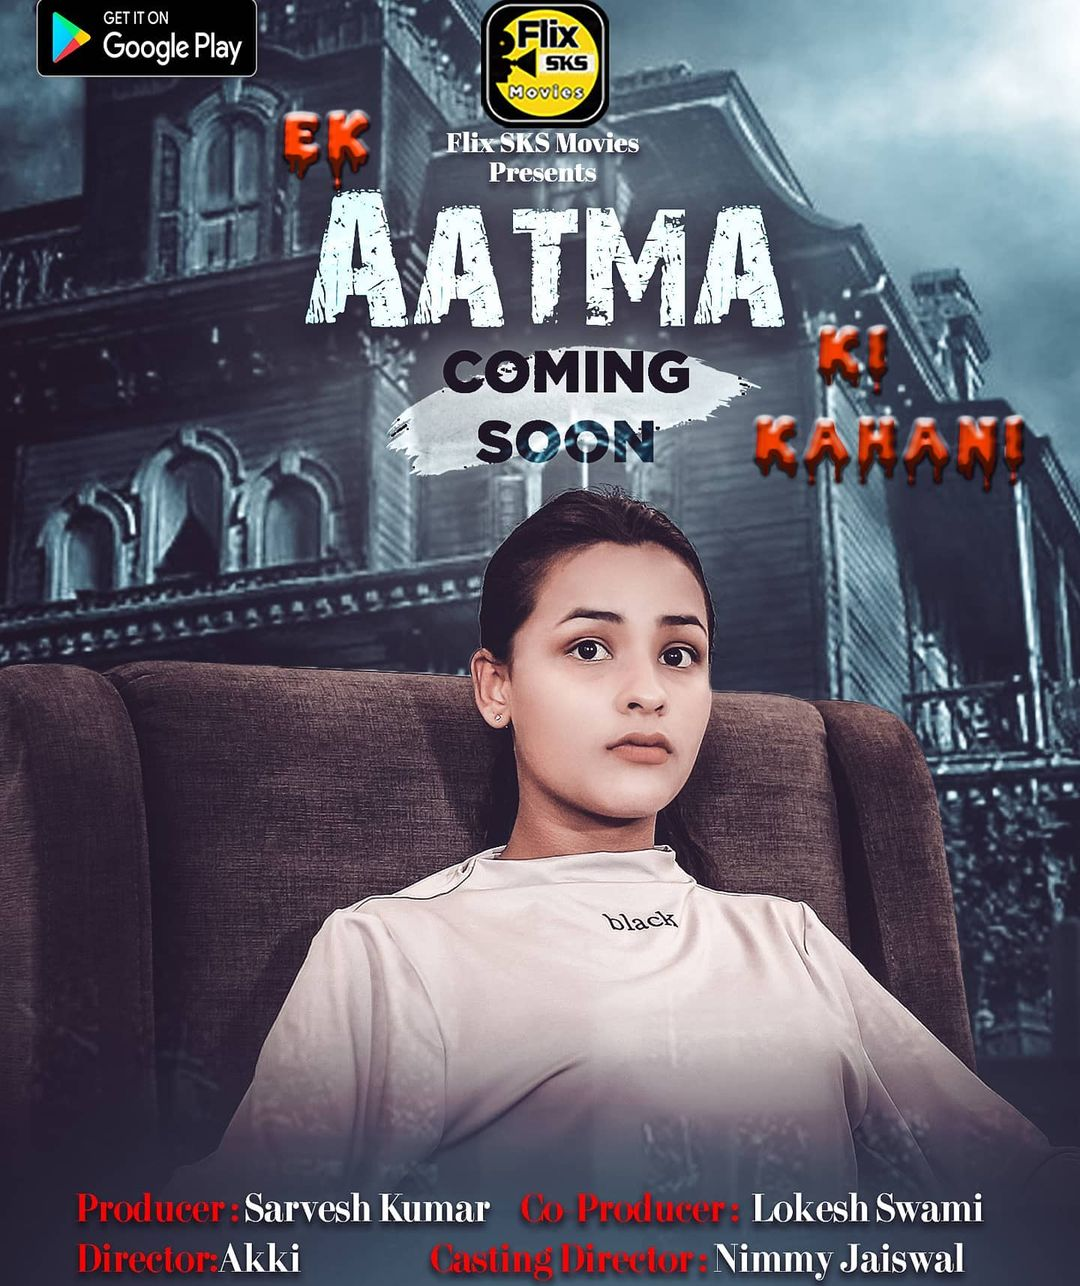 Ek Aatma Ki Kahani 2020 S01E01 FlixSKSMovies Original Hindi Web Series 720p HDRip 170MB Download